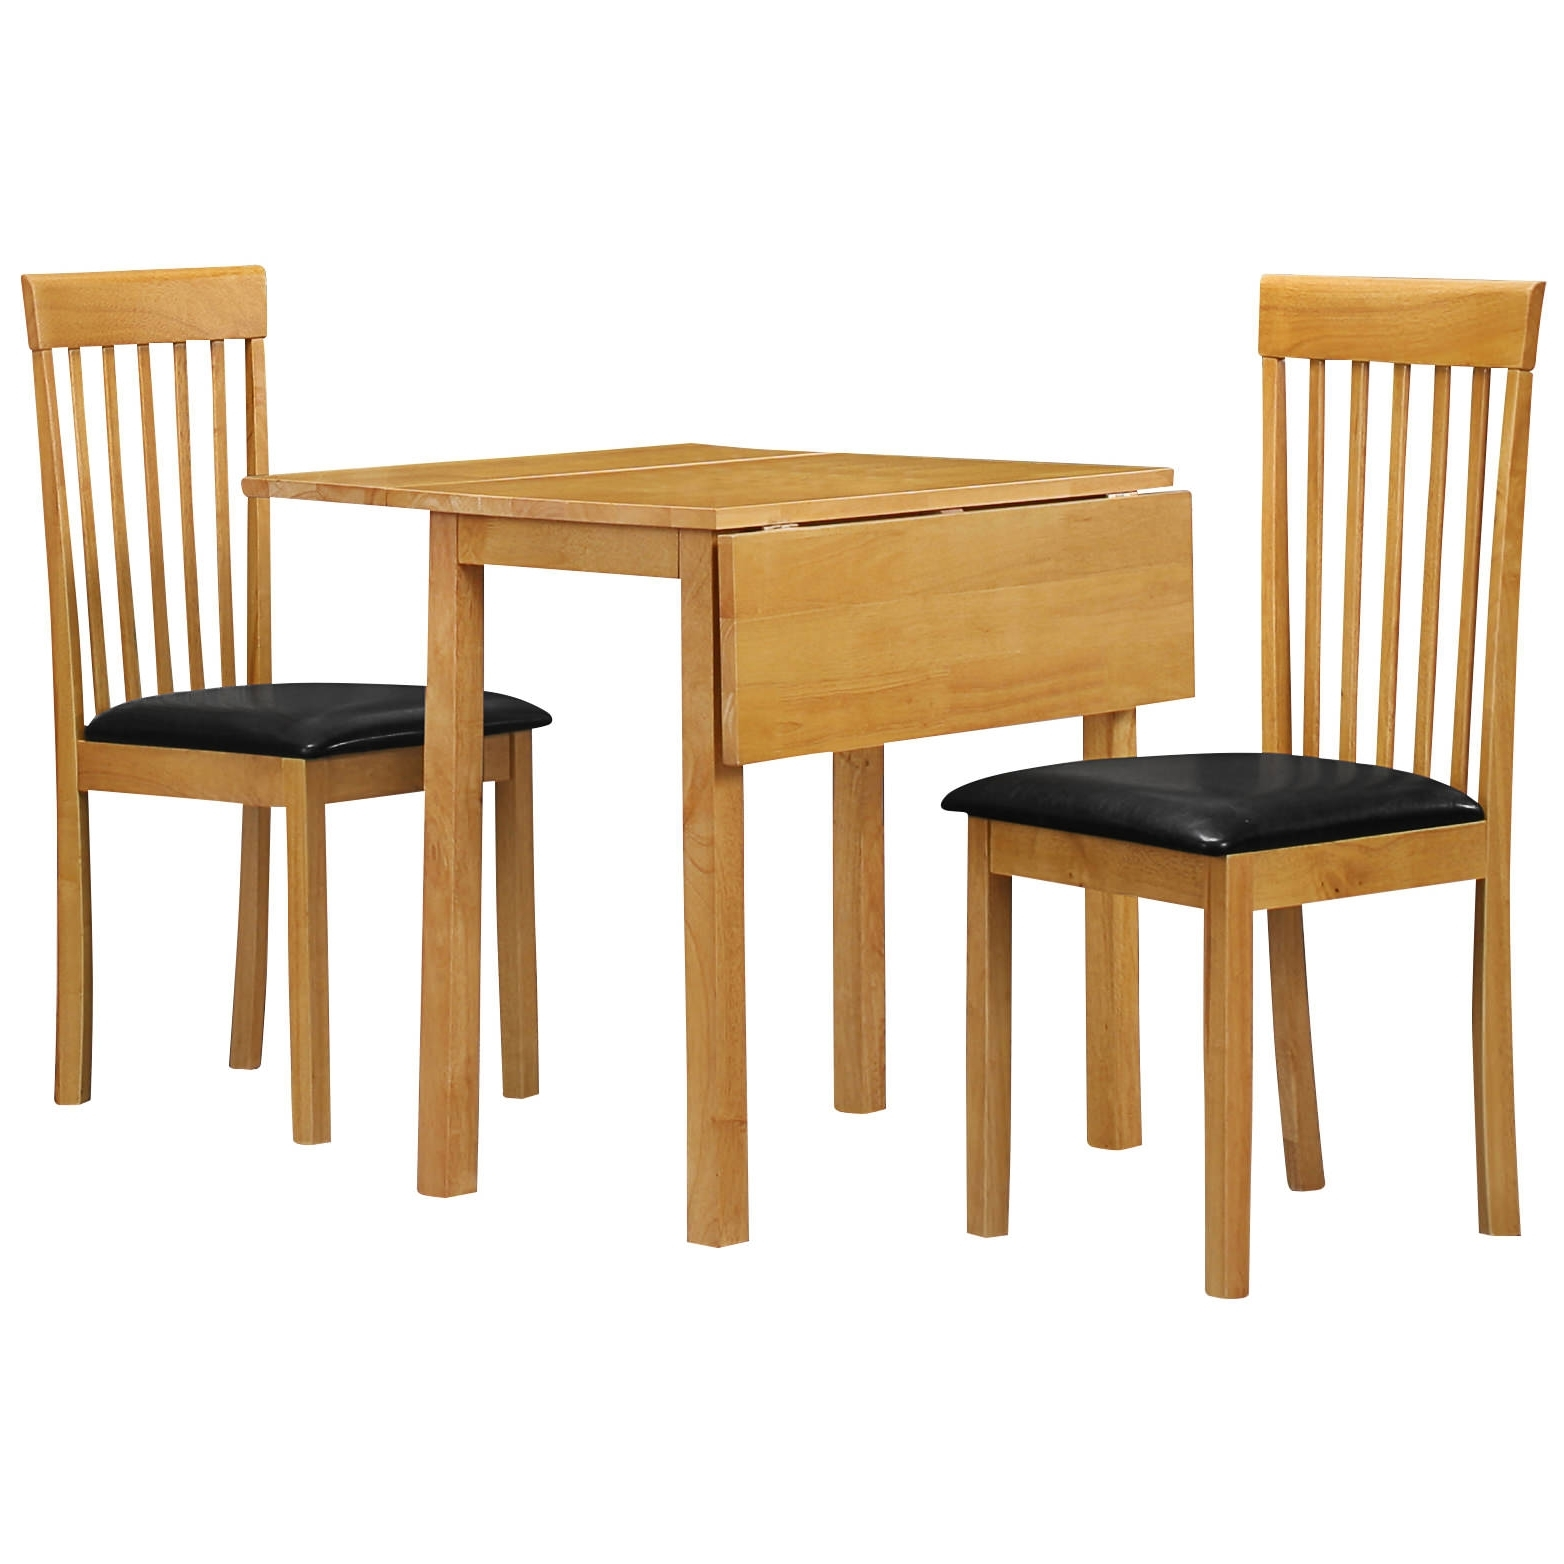 Black Extendable Dining Tables And Chairs In Recent Natural Oak Extending Extendable Dining Table And Chair Set With 2 (Gallery 13 of 25)